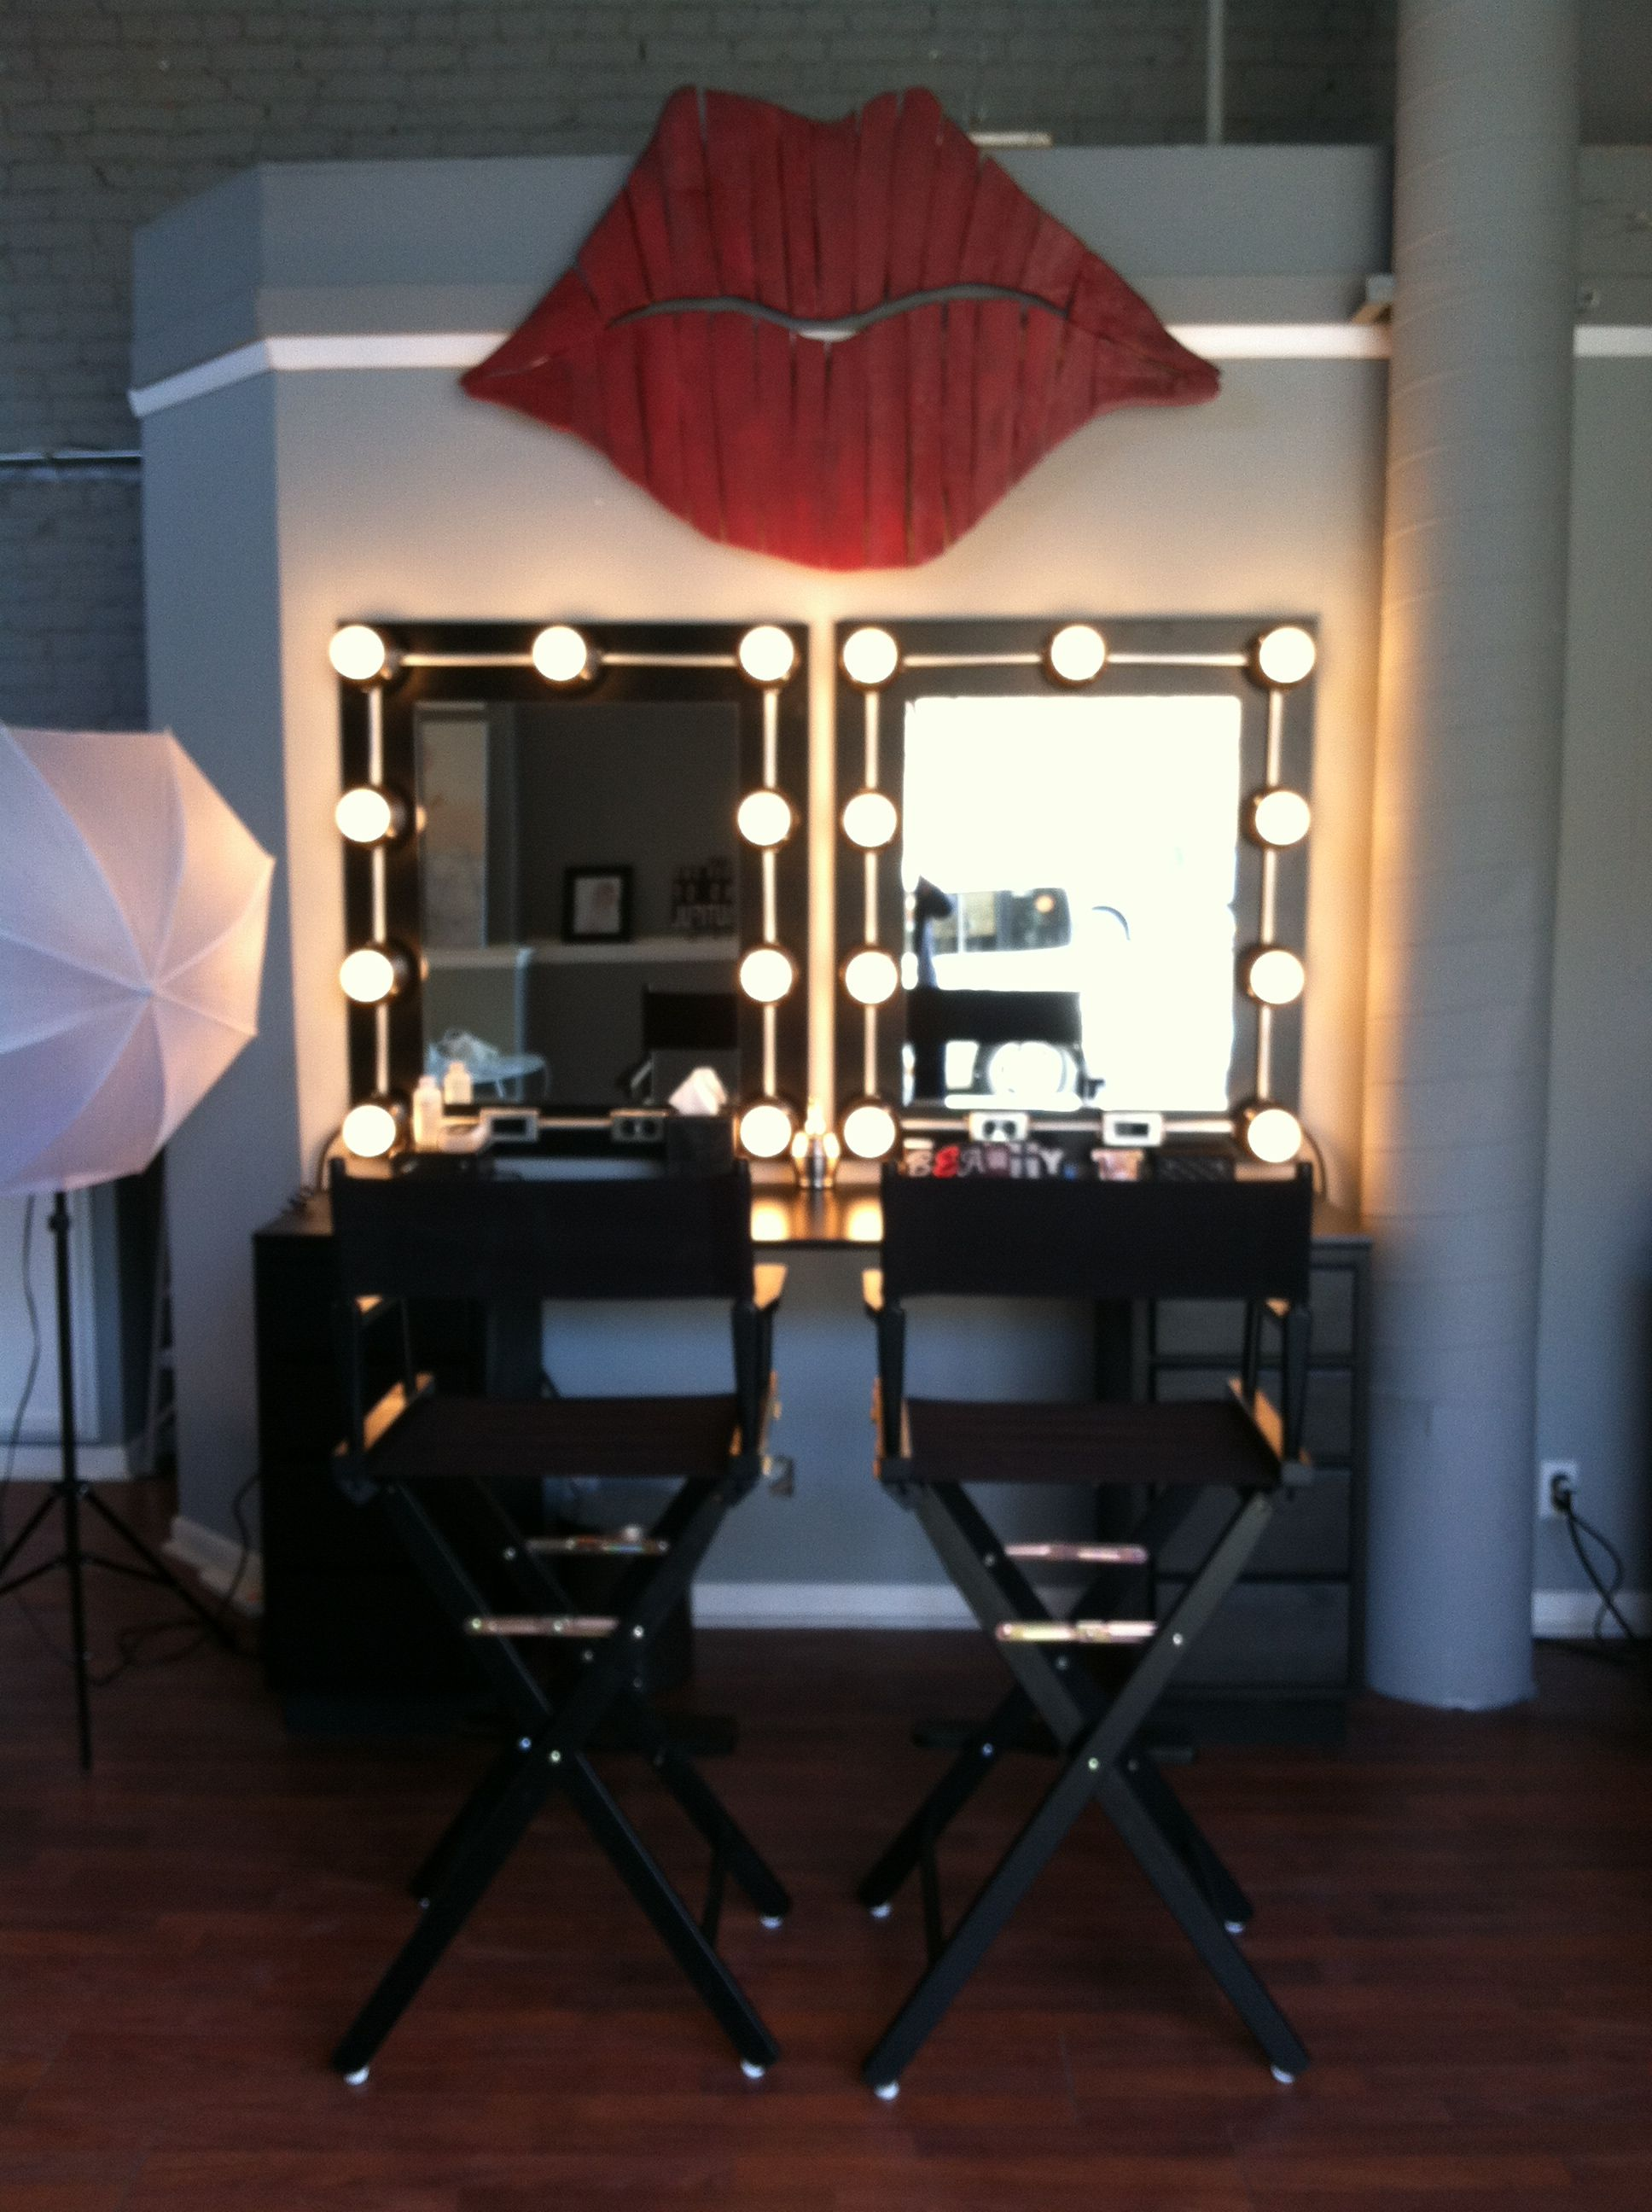 Make Up Studio Chairs Makeup Studio Directors Chairs Hollywood Lights Red